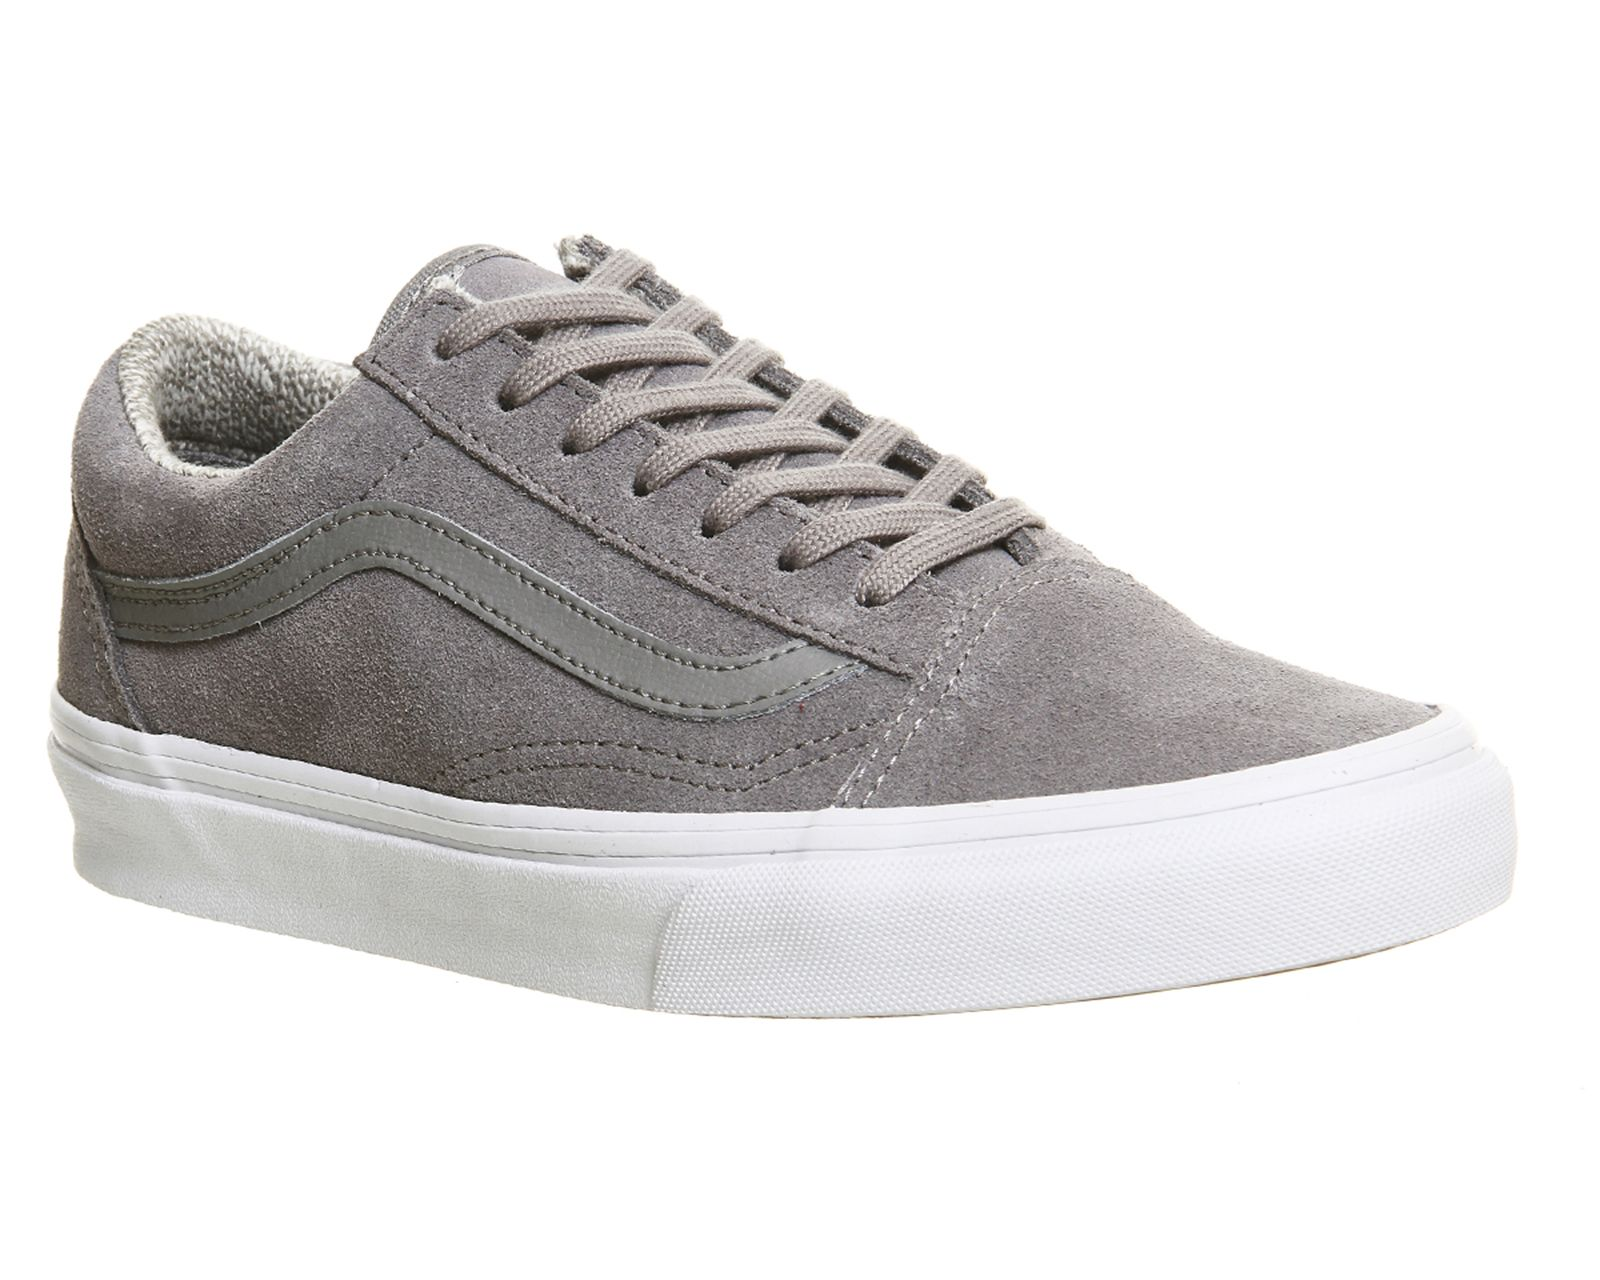 Buy Suede Woven Grey Vans Old Skool from OFFICE.co.uk ... a71cea2767